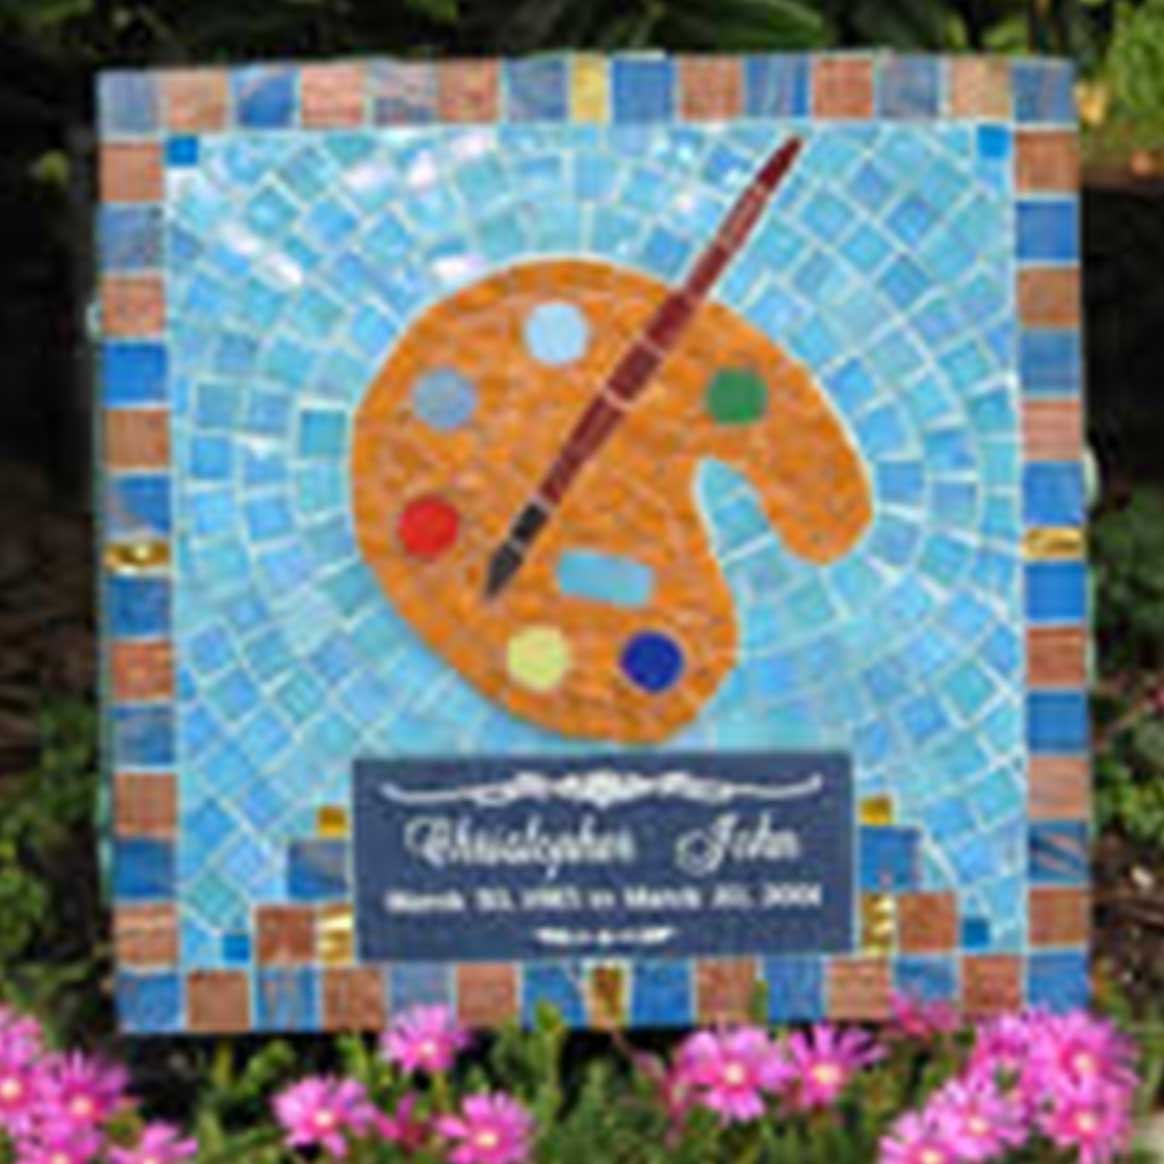 Mosaic Memorial Garden Art Stone of Christopher's Art by Water's End Studio Artist Linda Solby